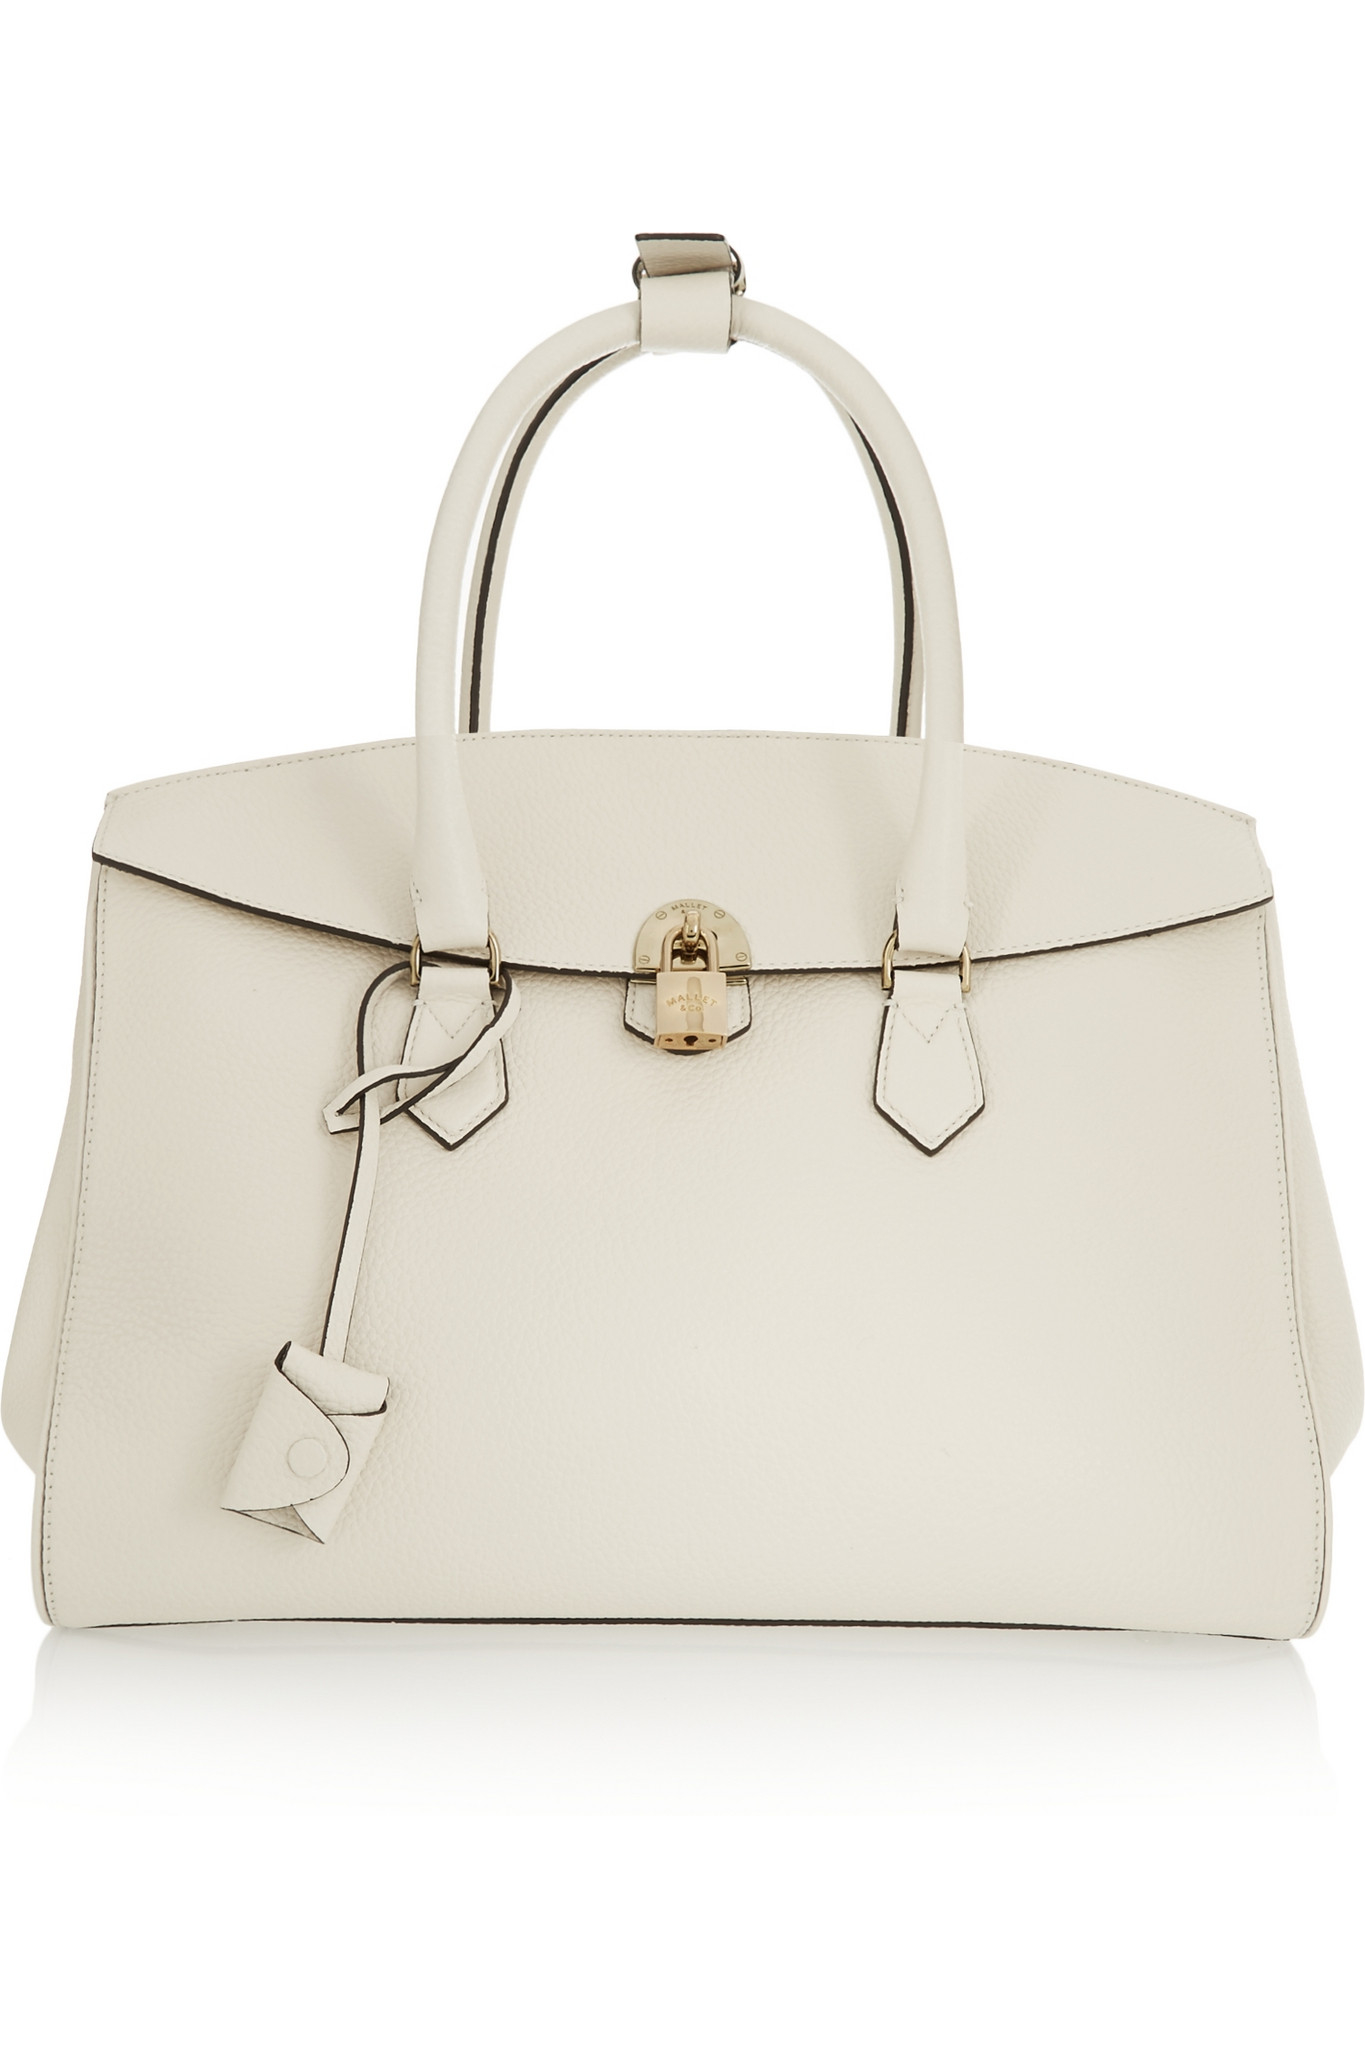 434c318d0c Mallet   Co Zeus Textured-leather Tote in White - Lyst